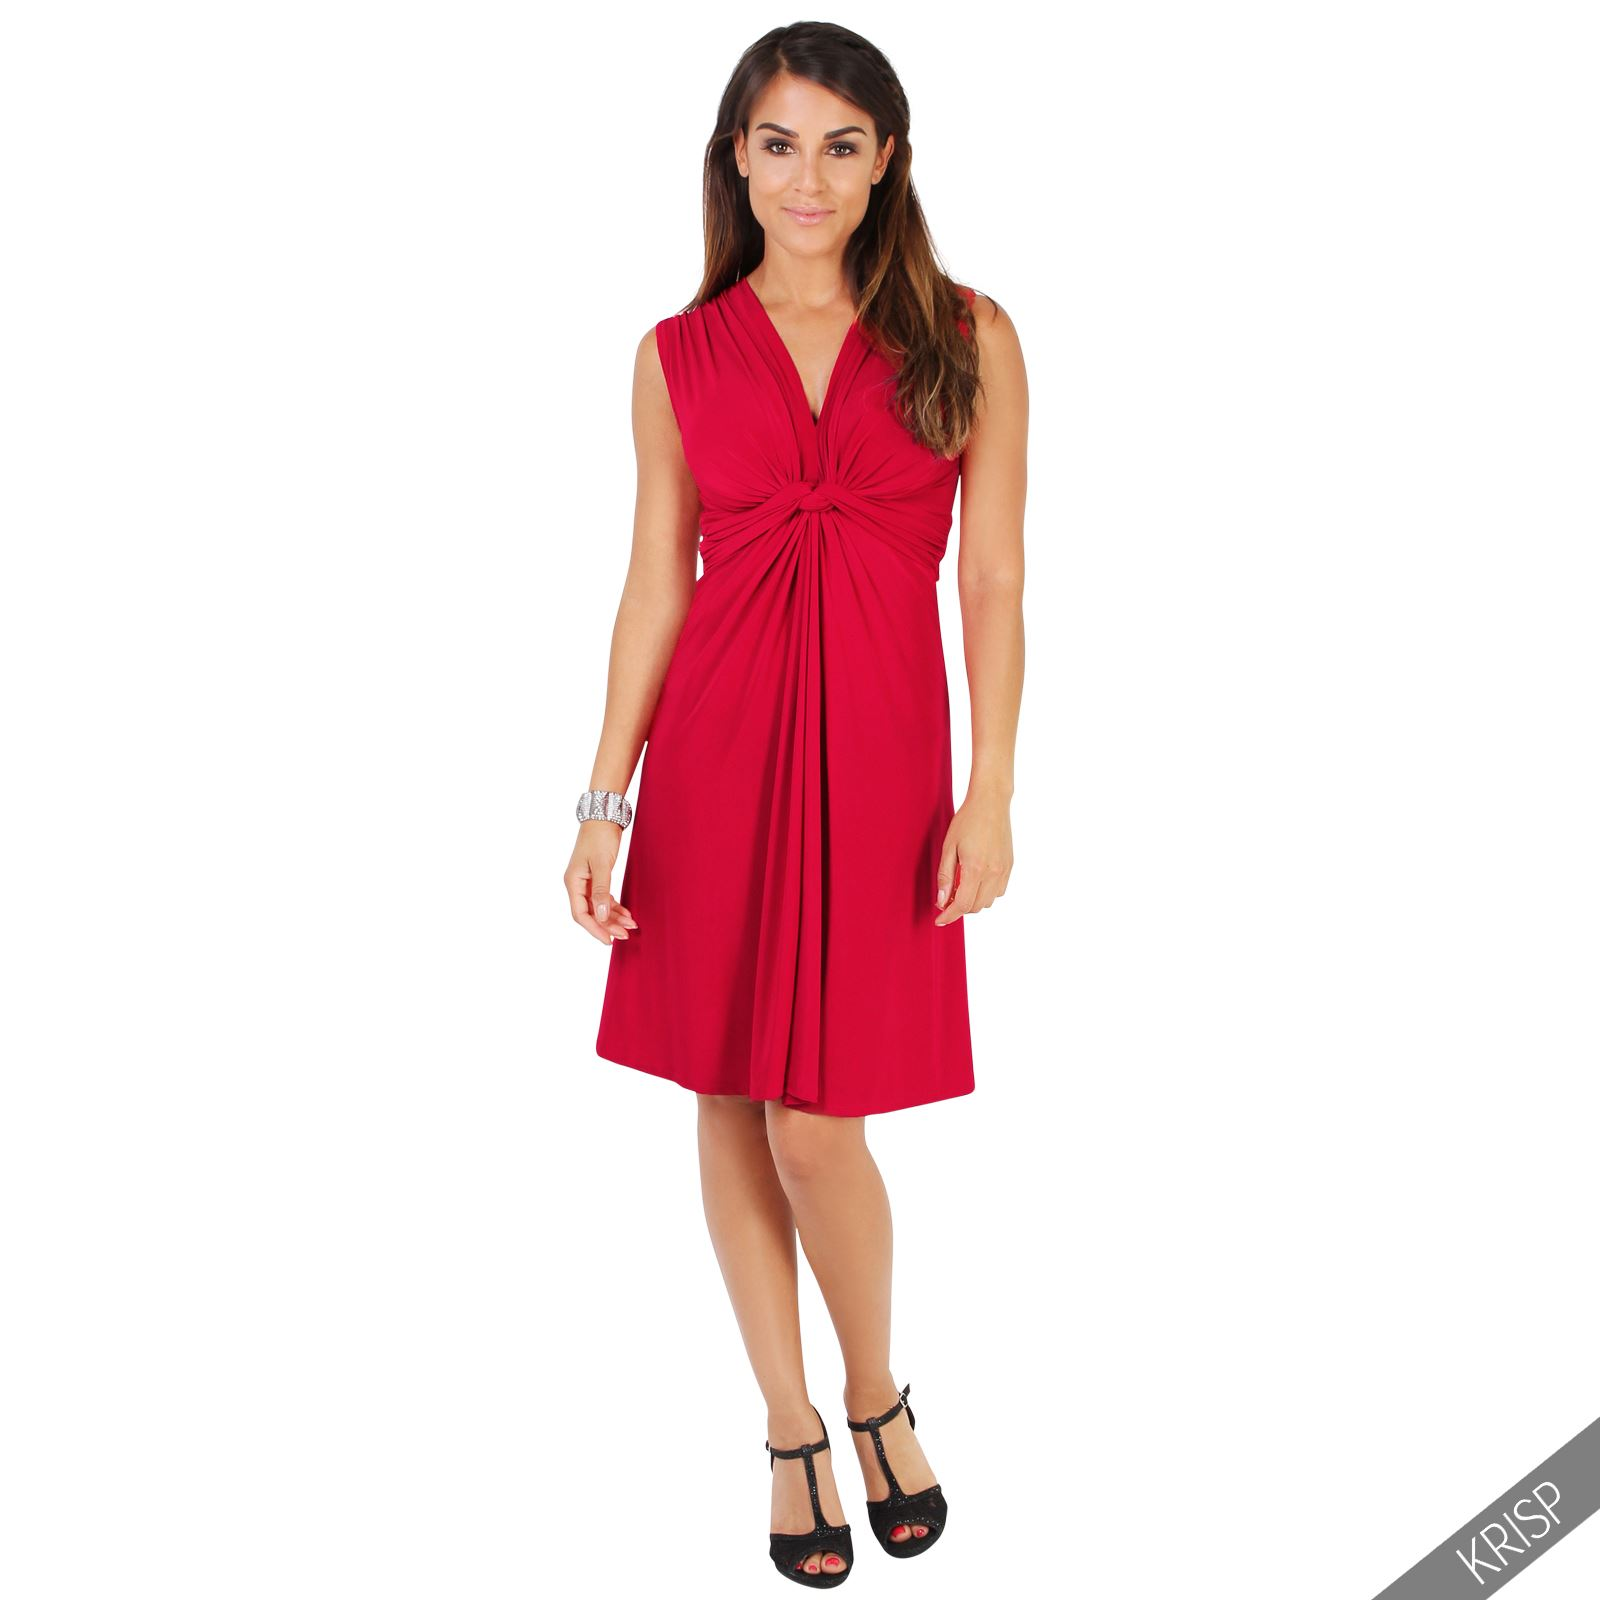 Ruched Drape Twist Knot Front Mini Dress Tie Belted Party